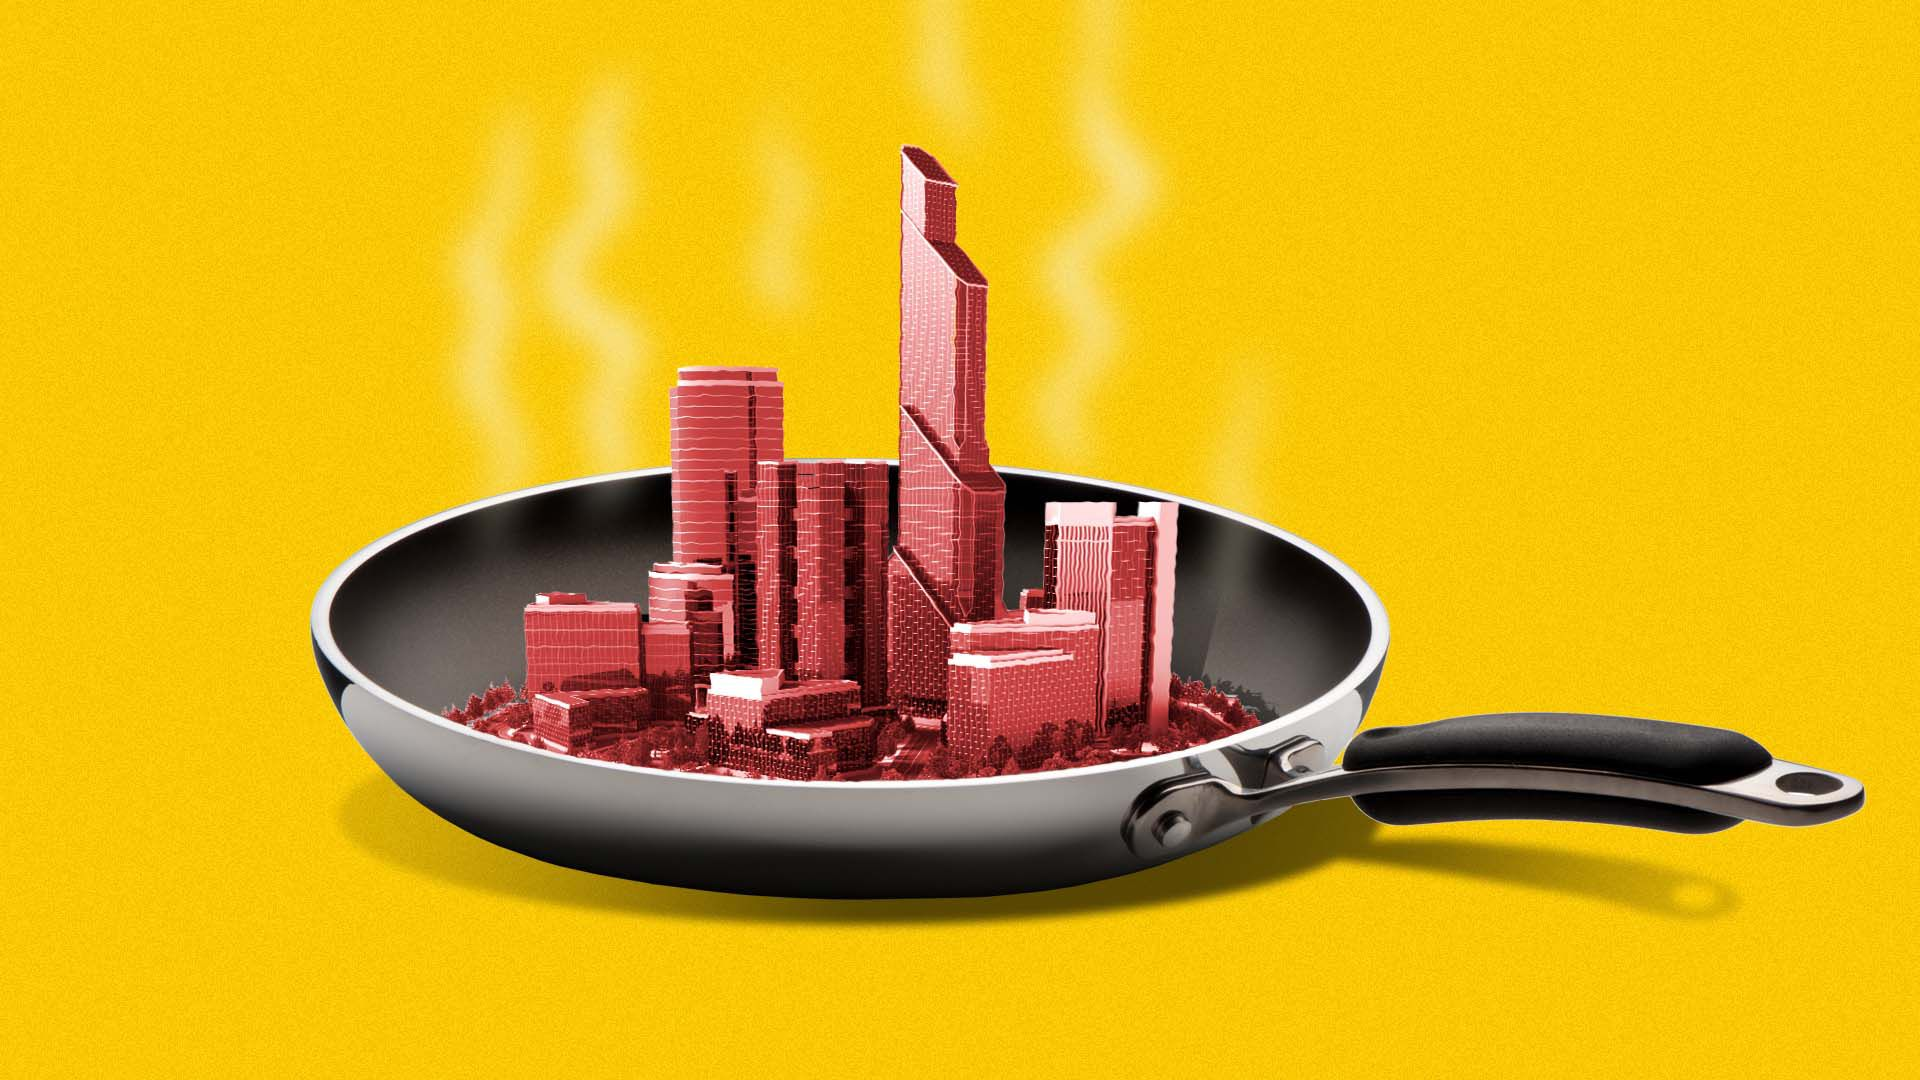 Illustration of a small city heating up in a skillet